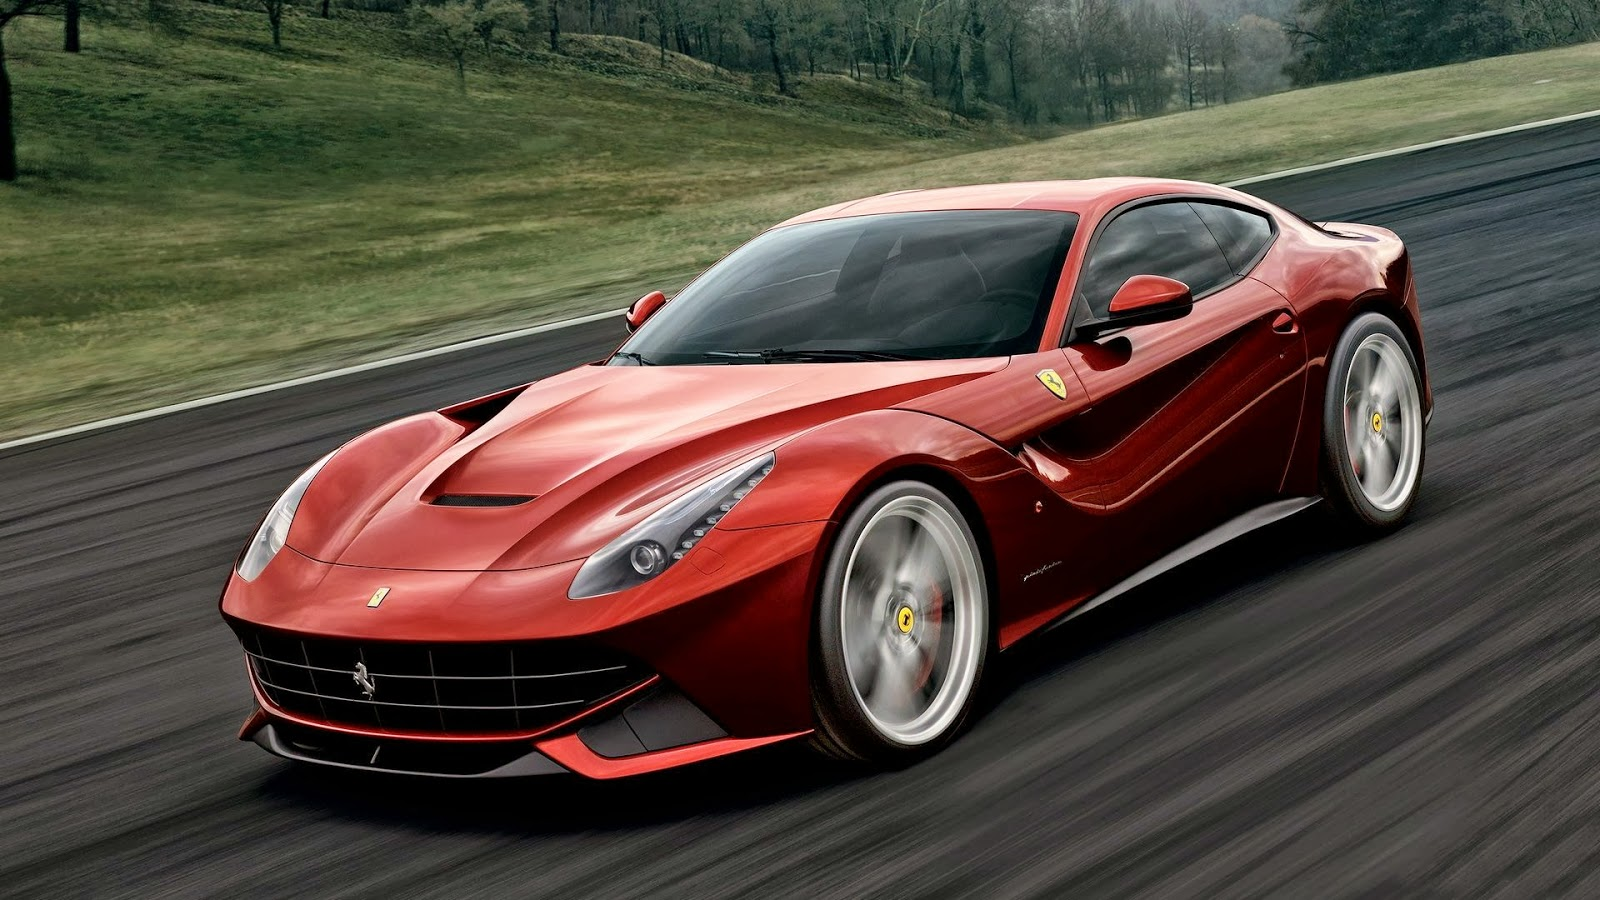 Ferrari Car Images Free Download Download Free Upcoming Ferrari